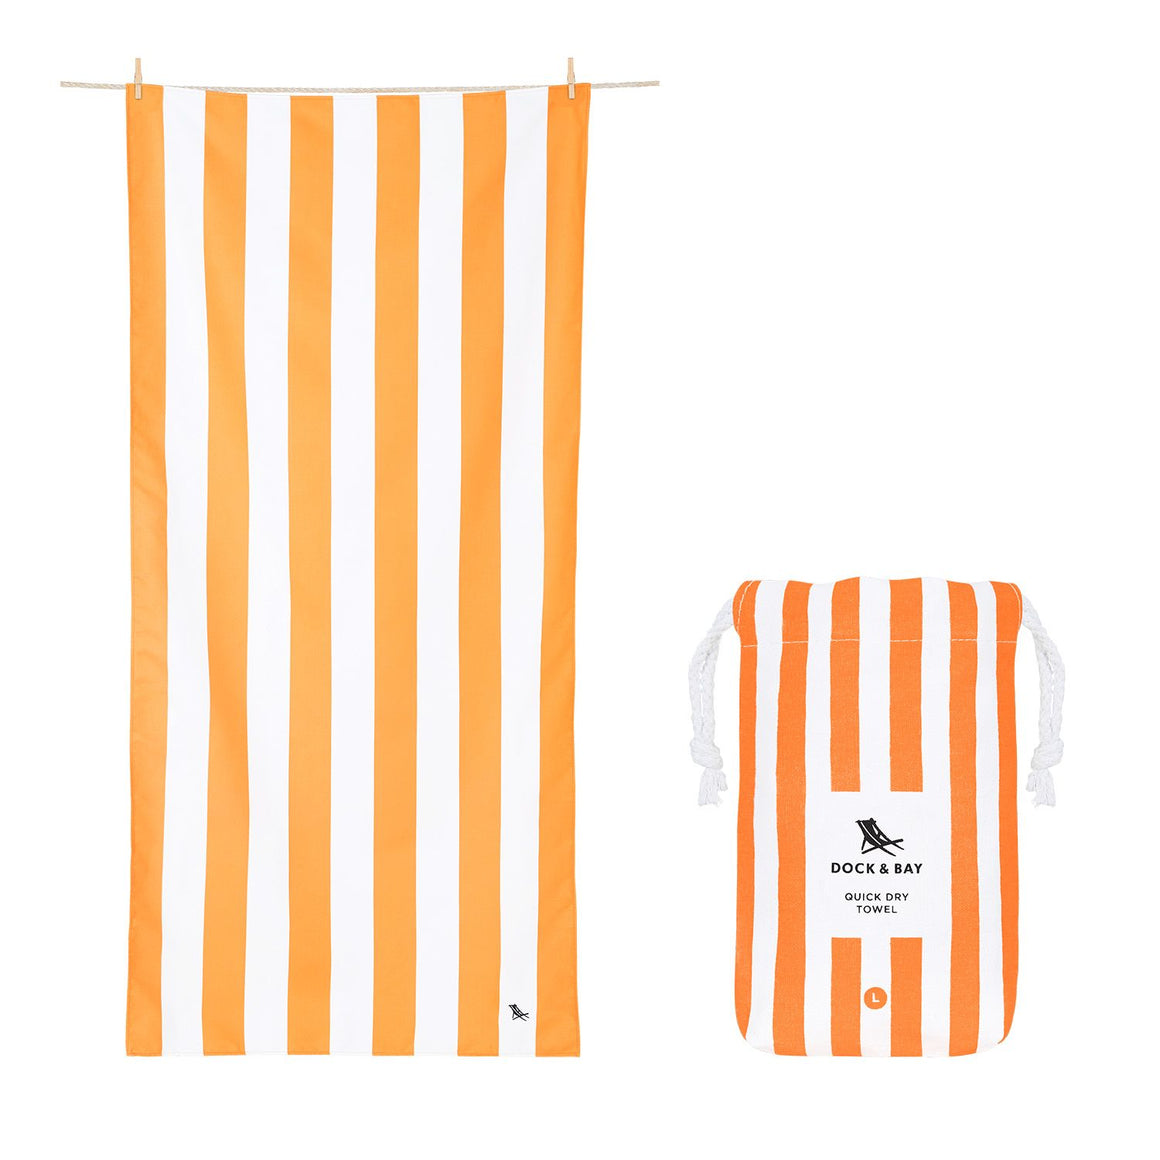 Cabana Stripe Ipanema Orange Beach Towel with Monogram - The Preppy Bunny